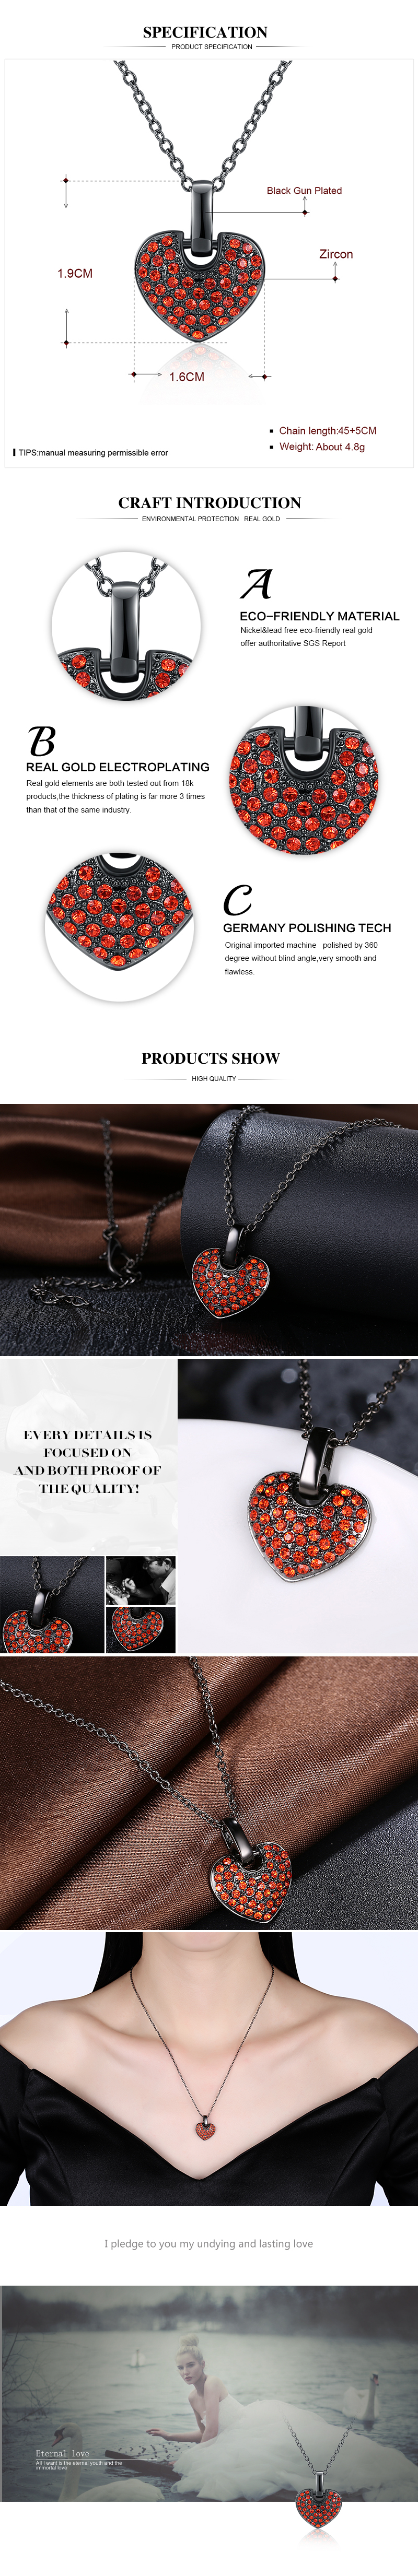 Necklaces NHKL12096